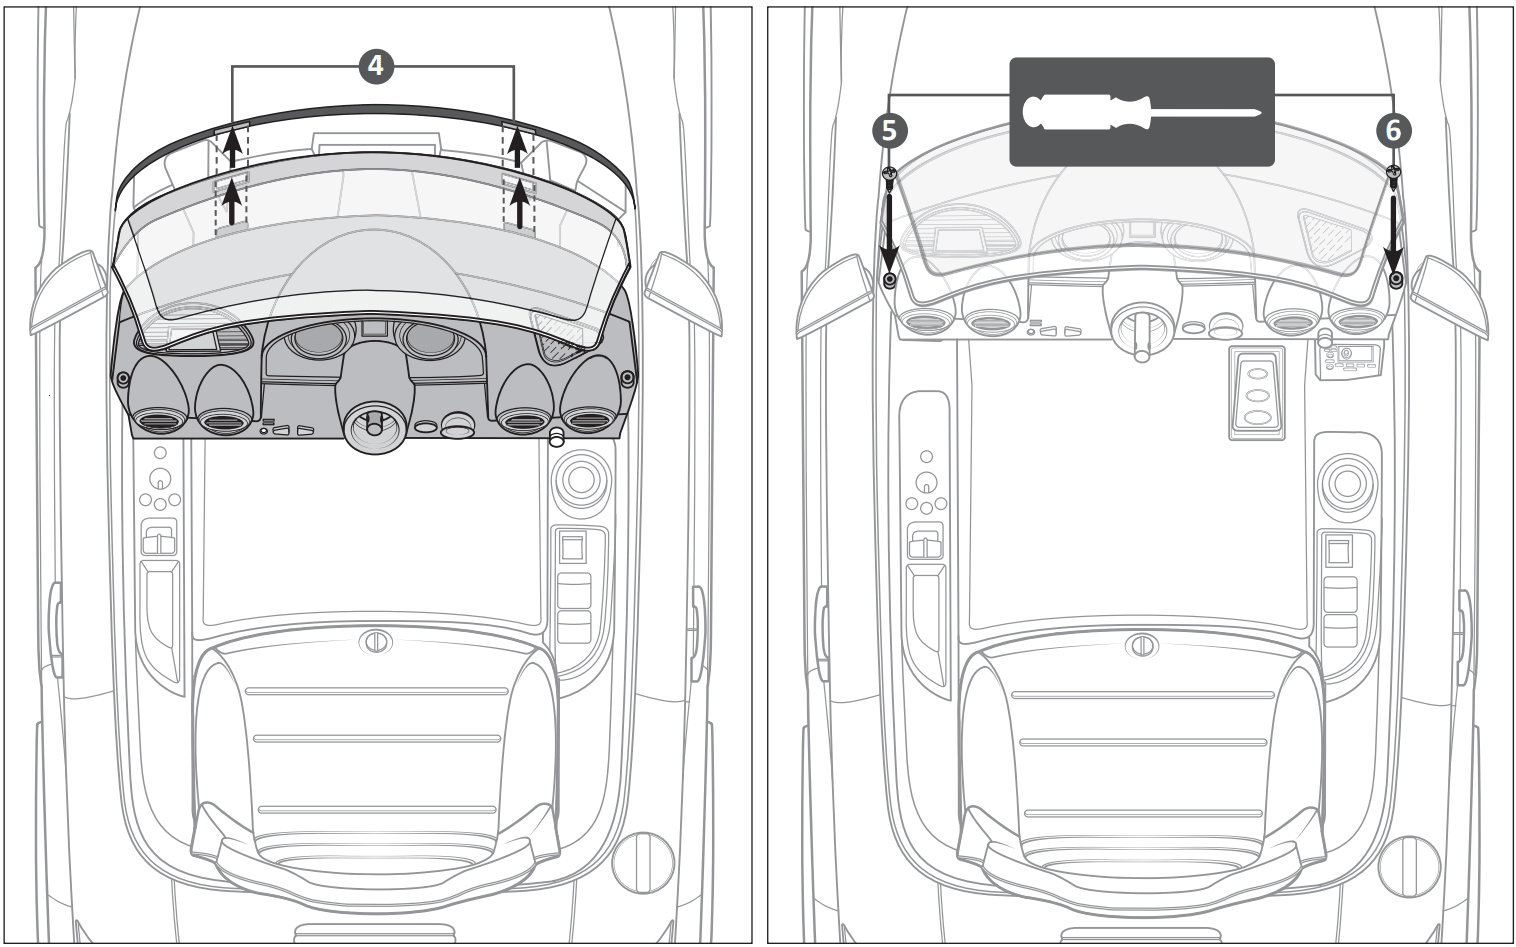 audi tt ride on car windscreen assembly illustration